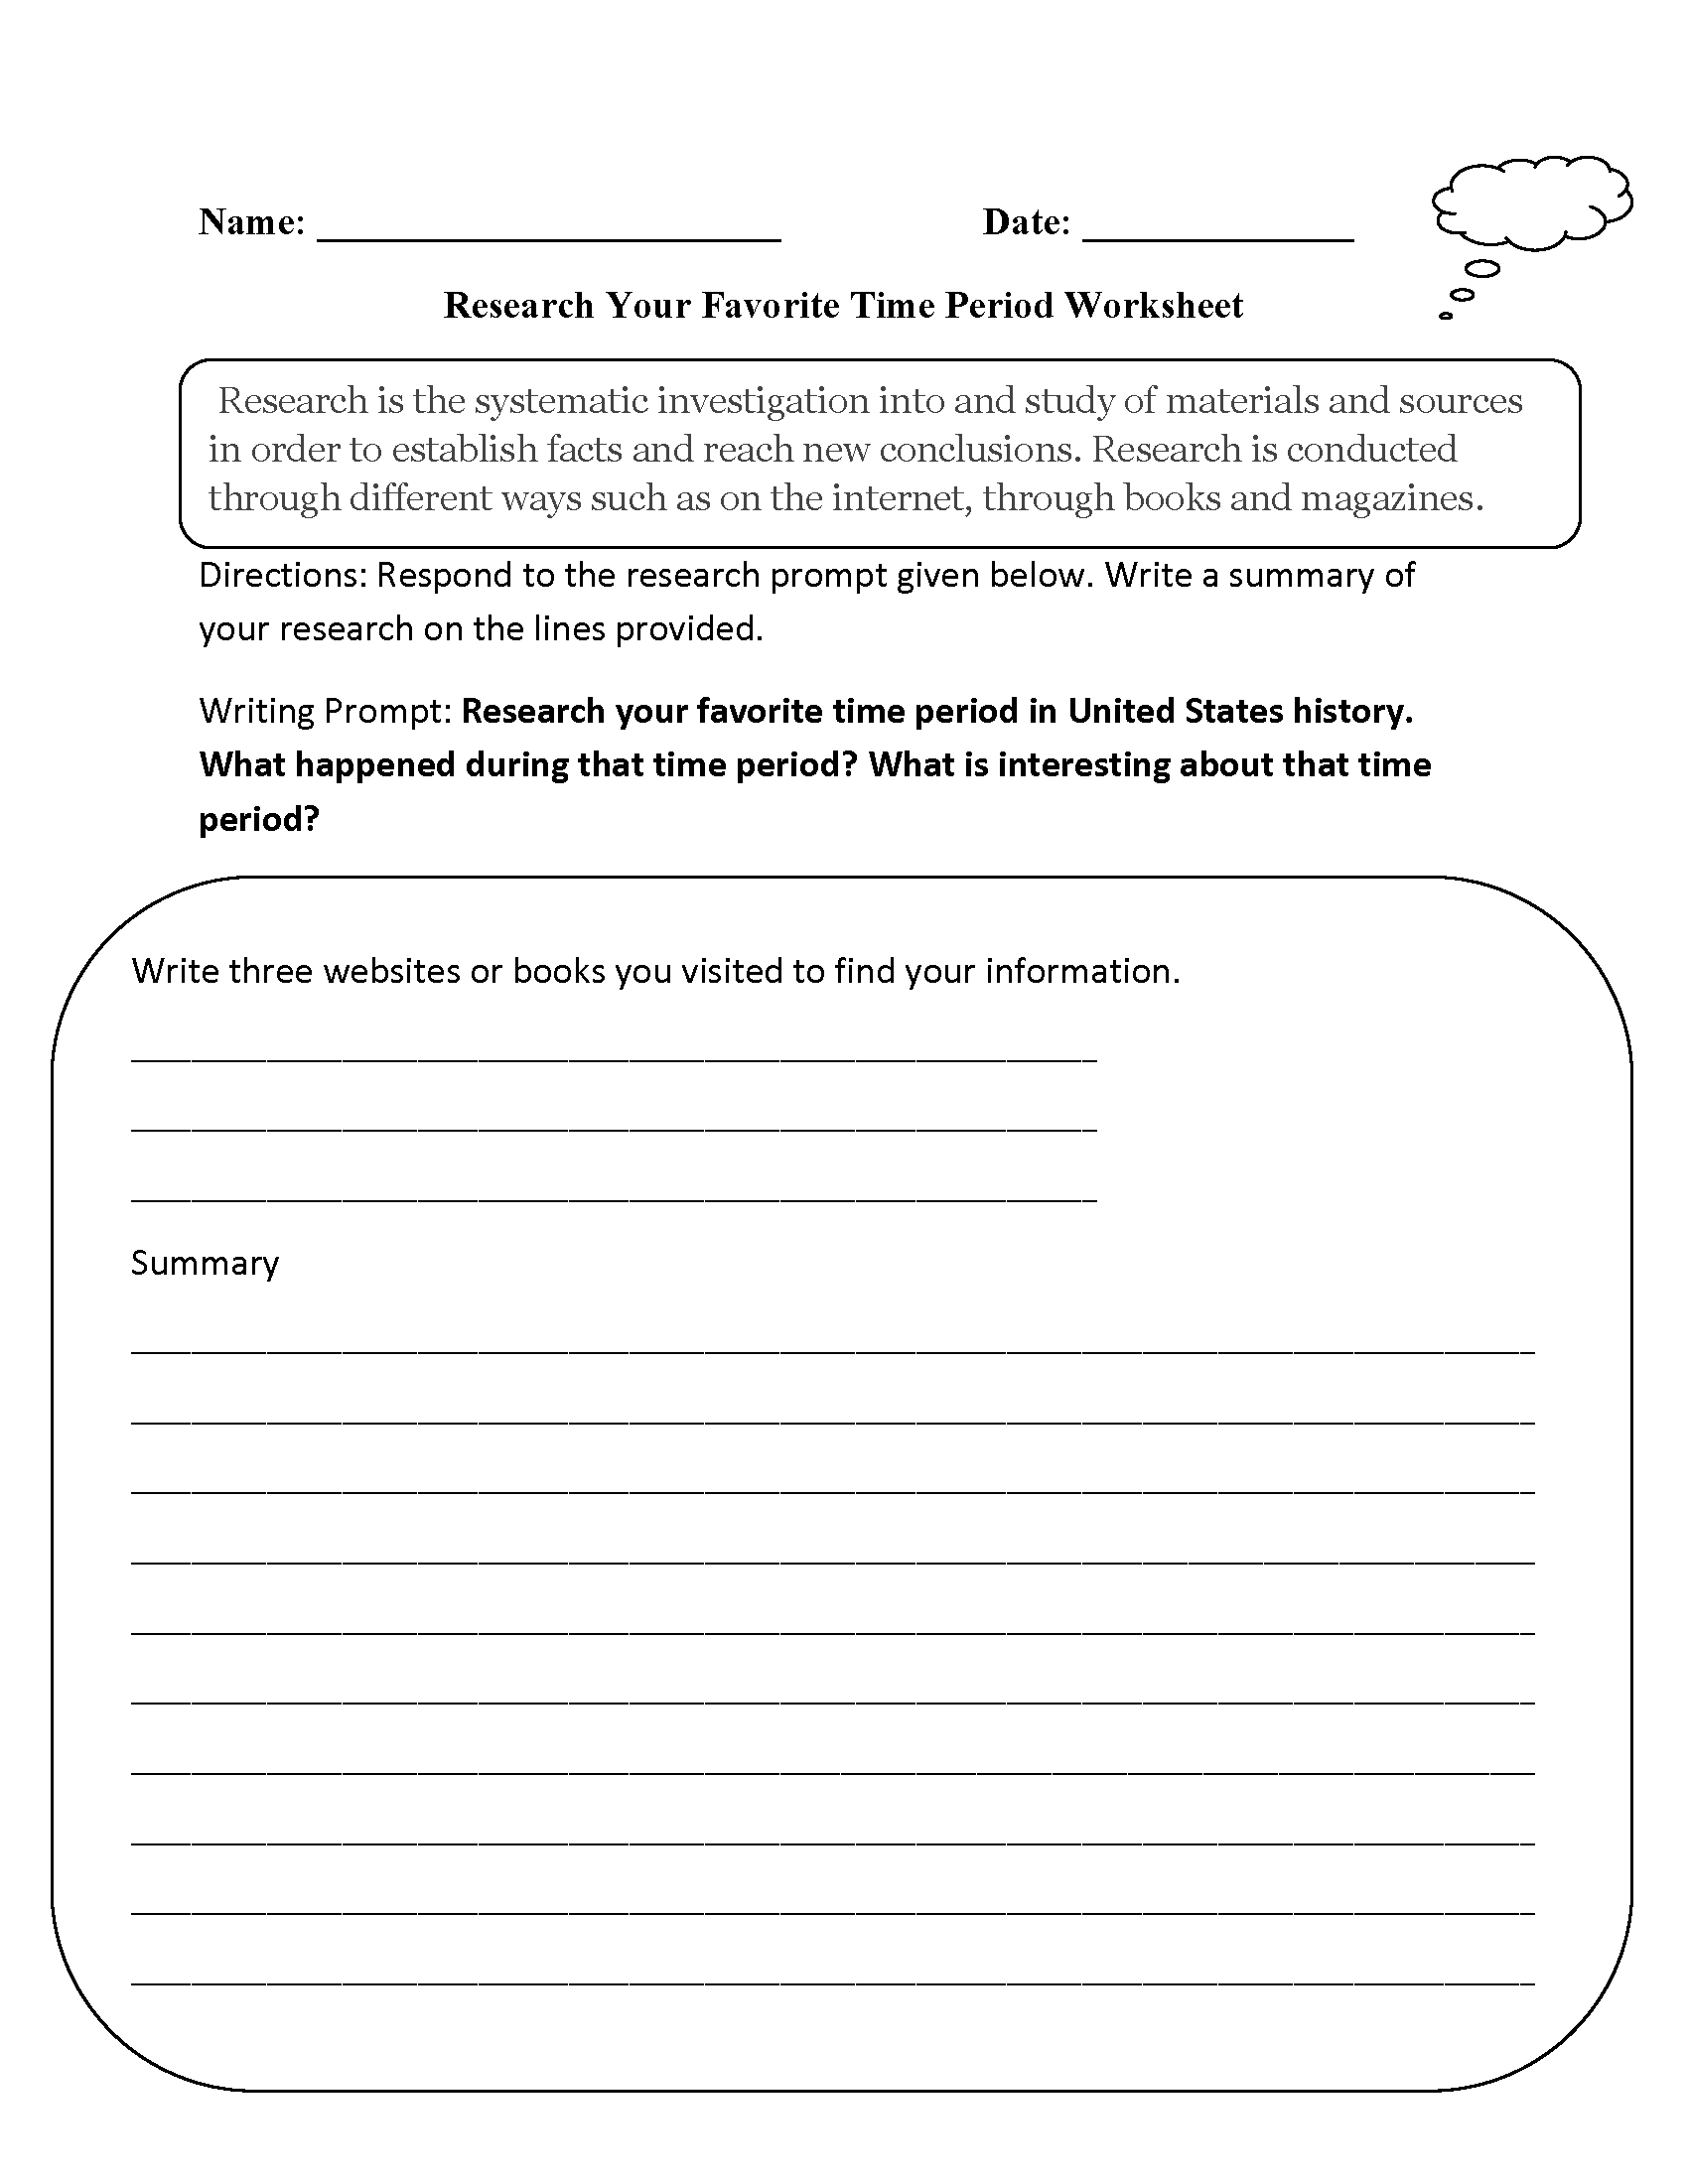 Worksheets Time Study Worksheet englishlinx com research worksheets favorite time period worksheet